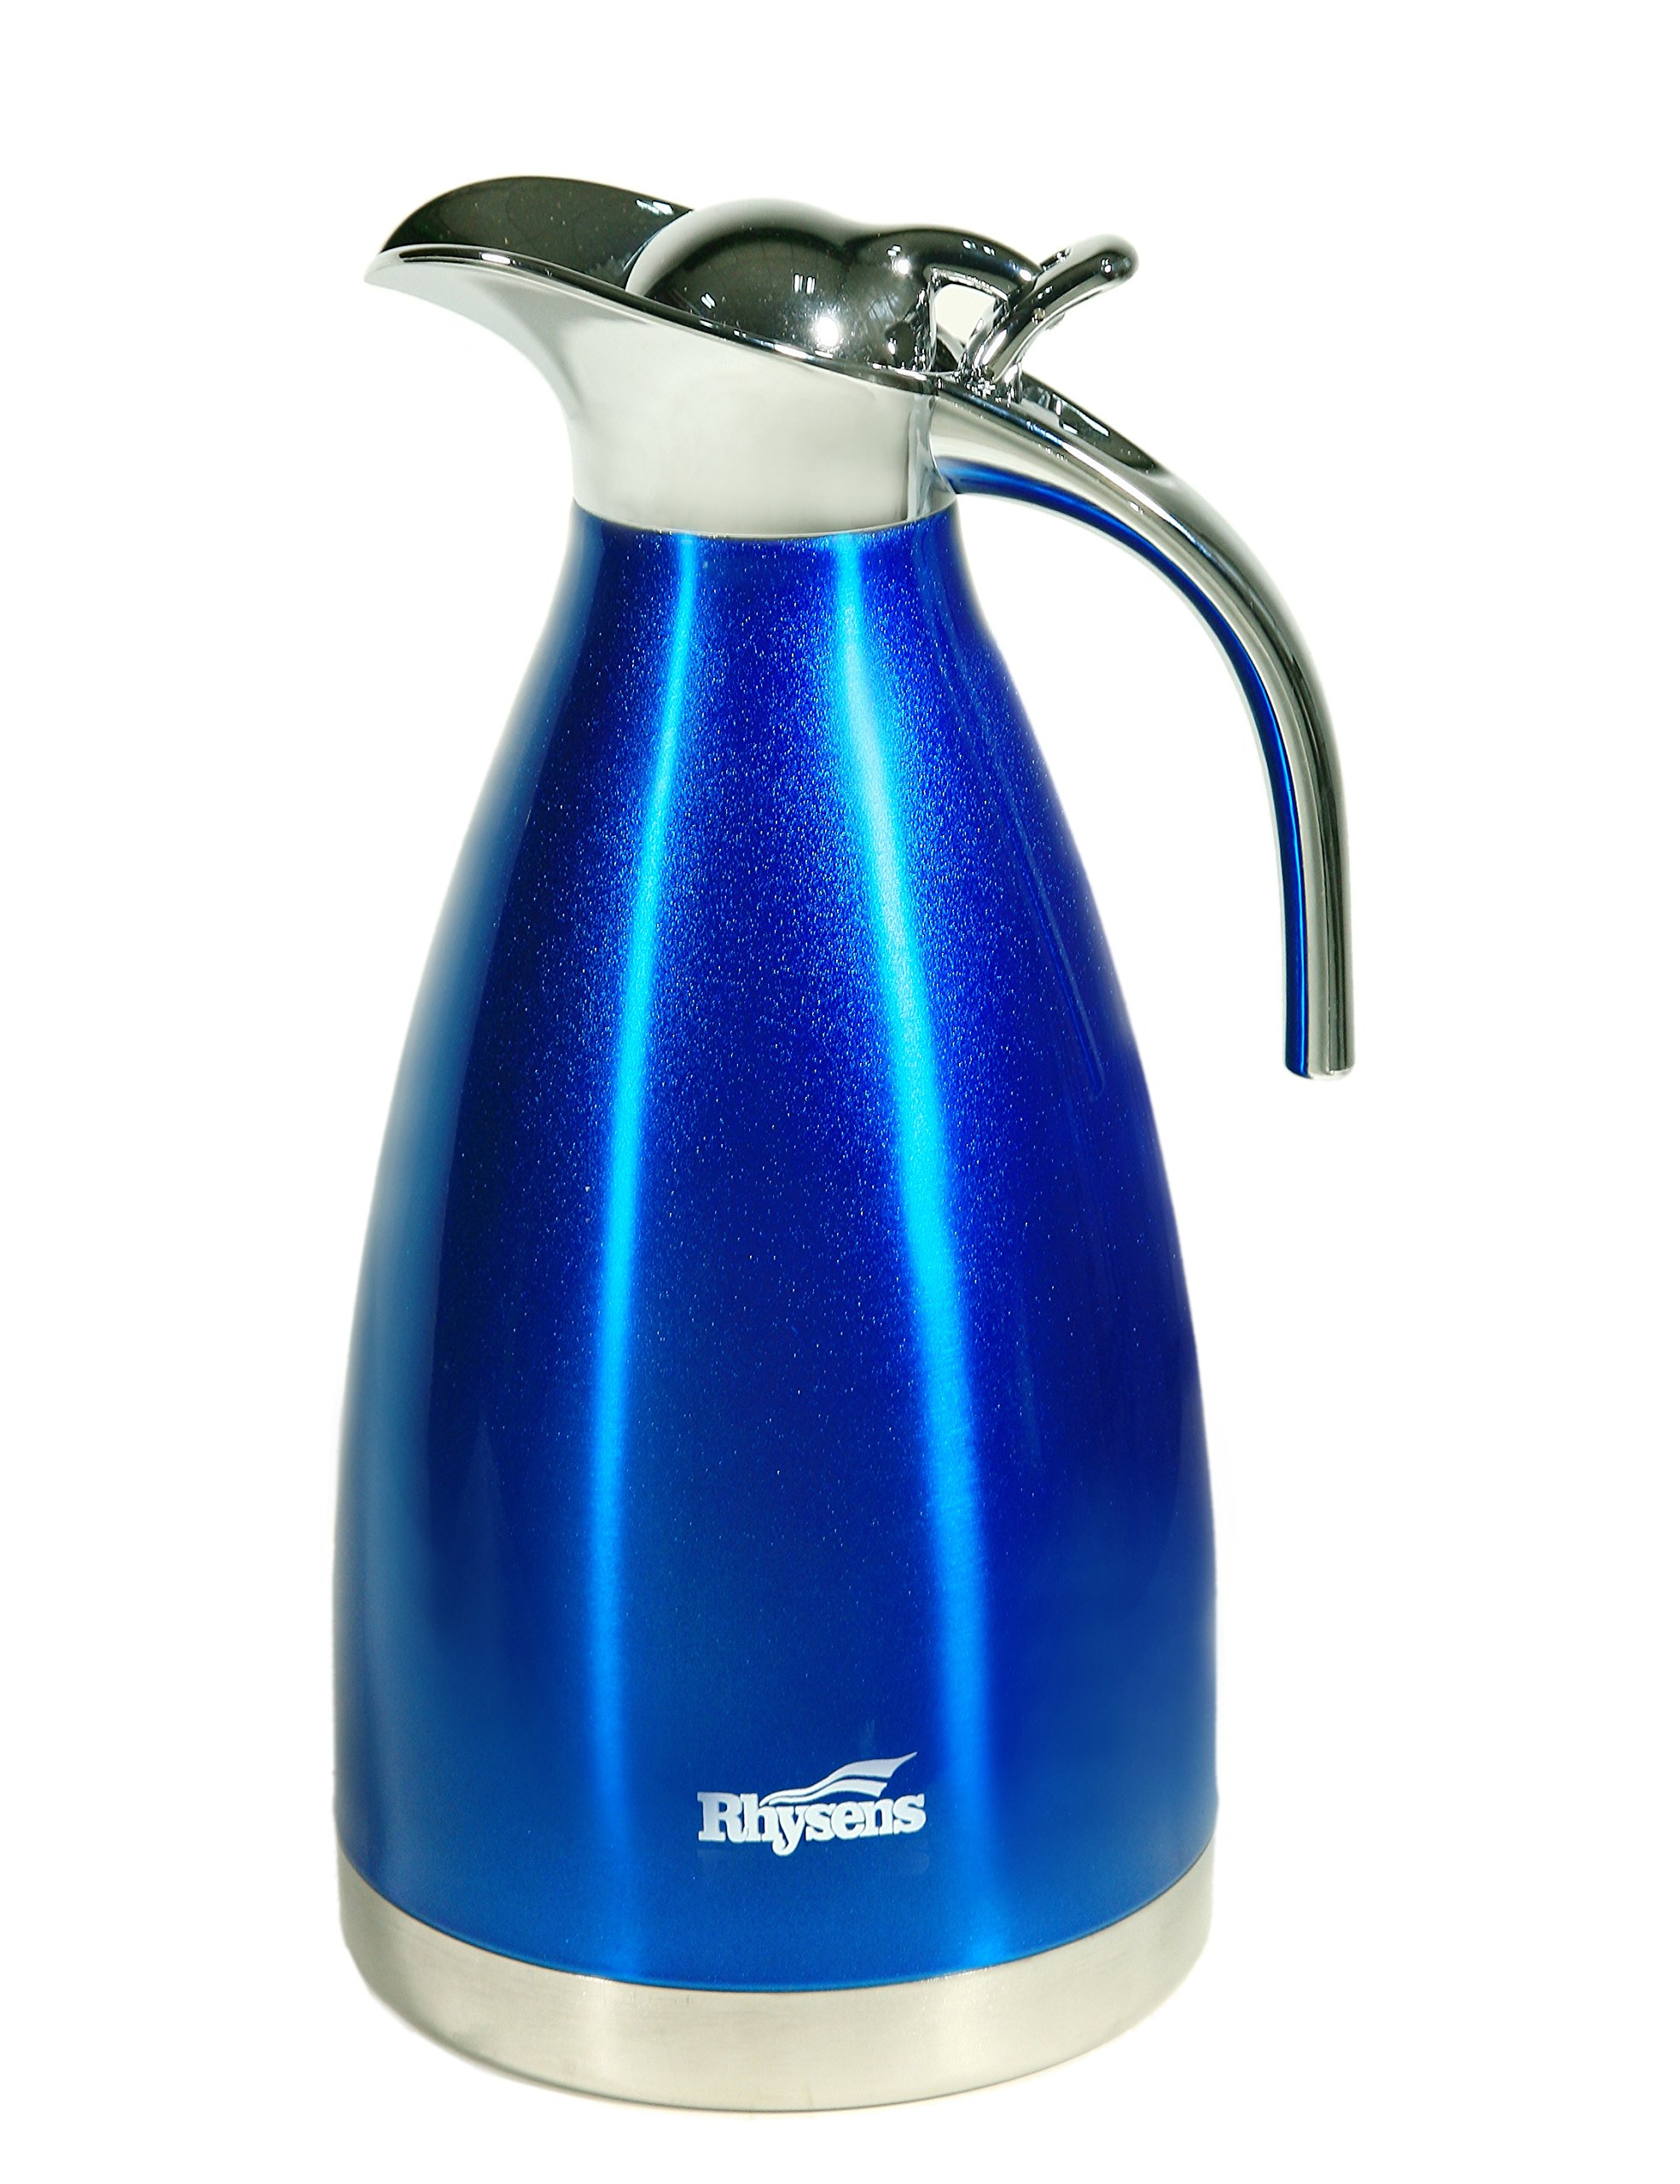 Rhysens 68oz Colored Stainless Steel Vacuum Insulated Thermos Carafe/Water Pitcher (Blue)